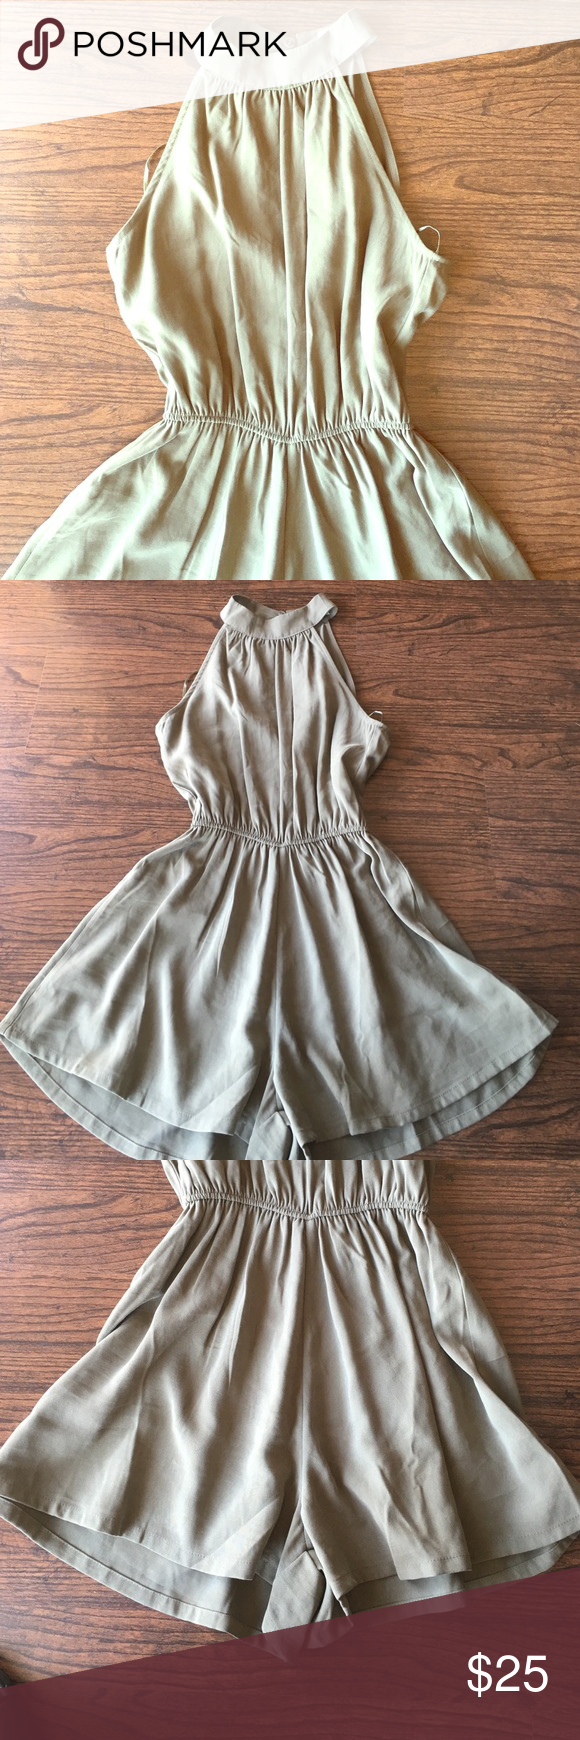 b0479aa8b398 Sienna Sky Romper Sienna Sky Romper. Olive green. Keyhole back with a small  rip. Very easy and cheap to fix. Like new condition. ❌NO TRADES❌ ⭐️Send me  ...